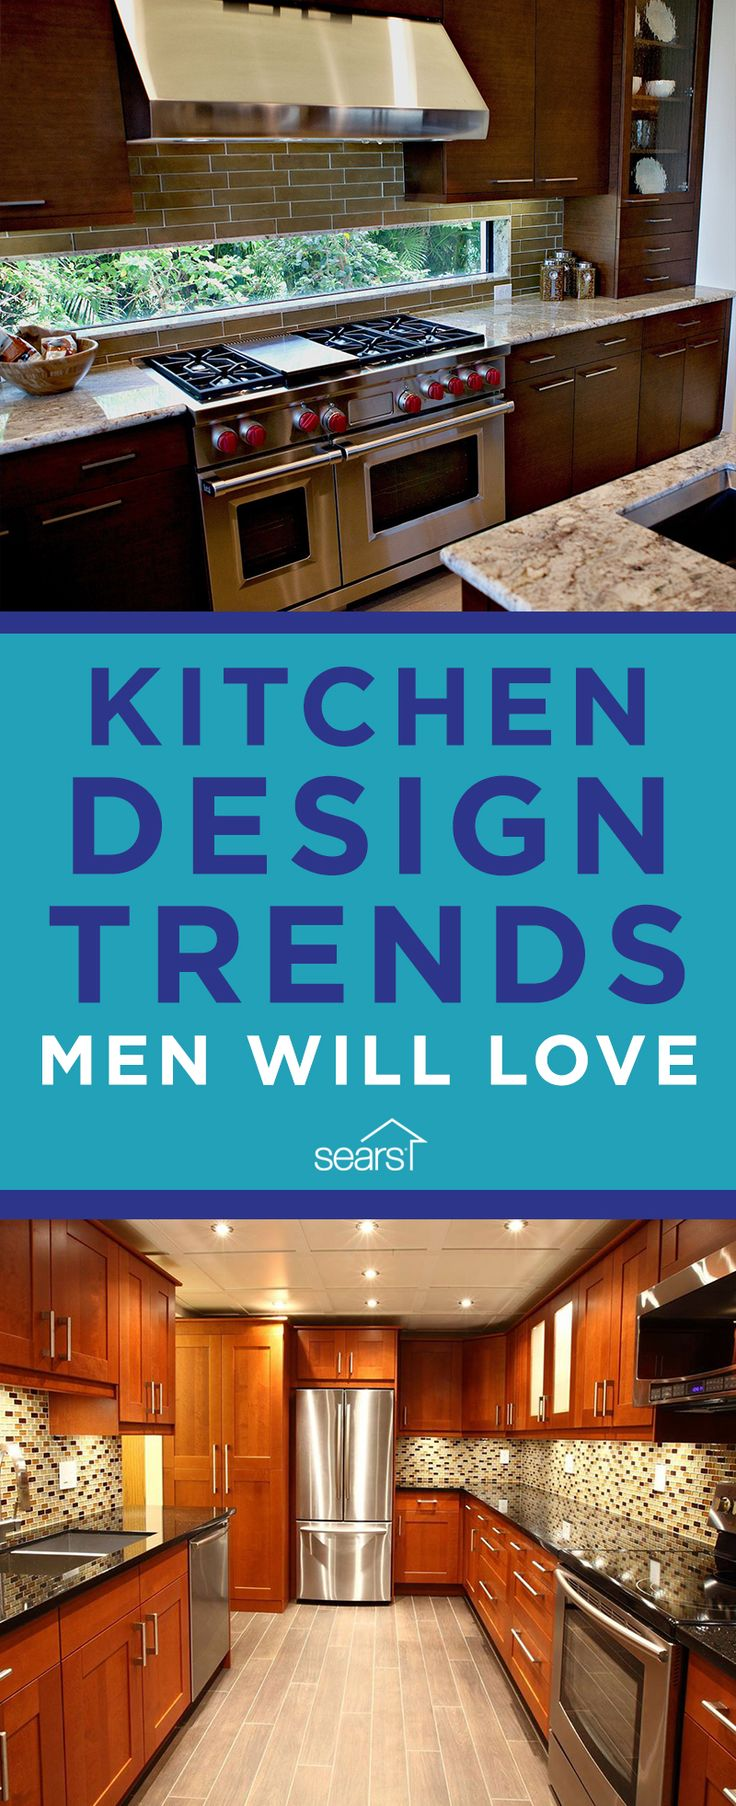 23 best Kitchen Remodel, Renovation & Design images on Pinterest ...